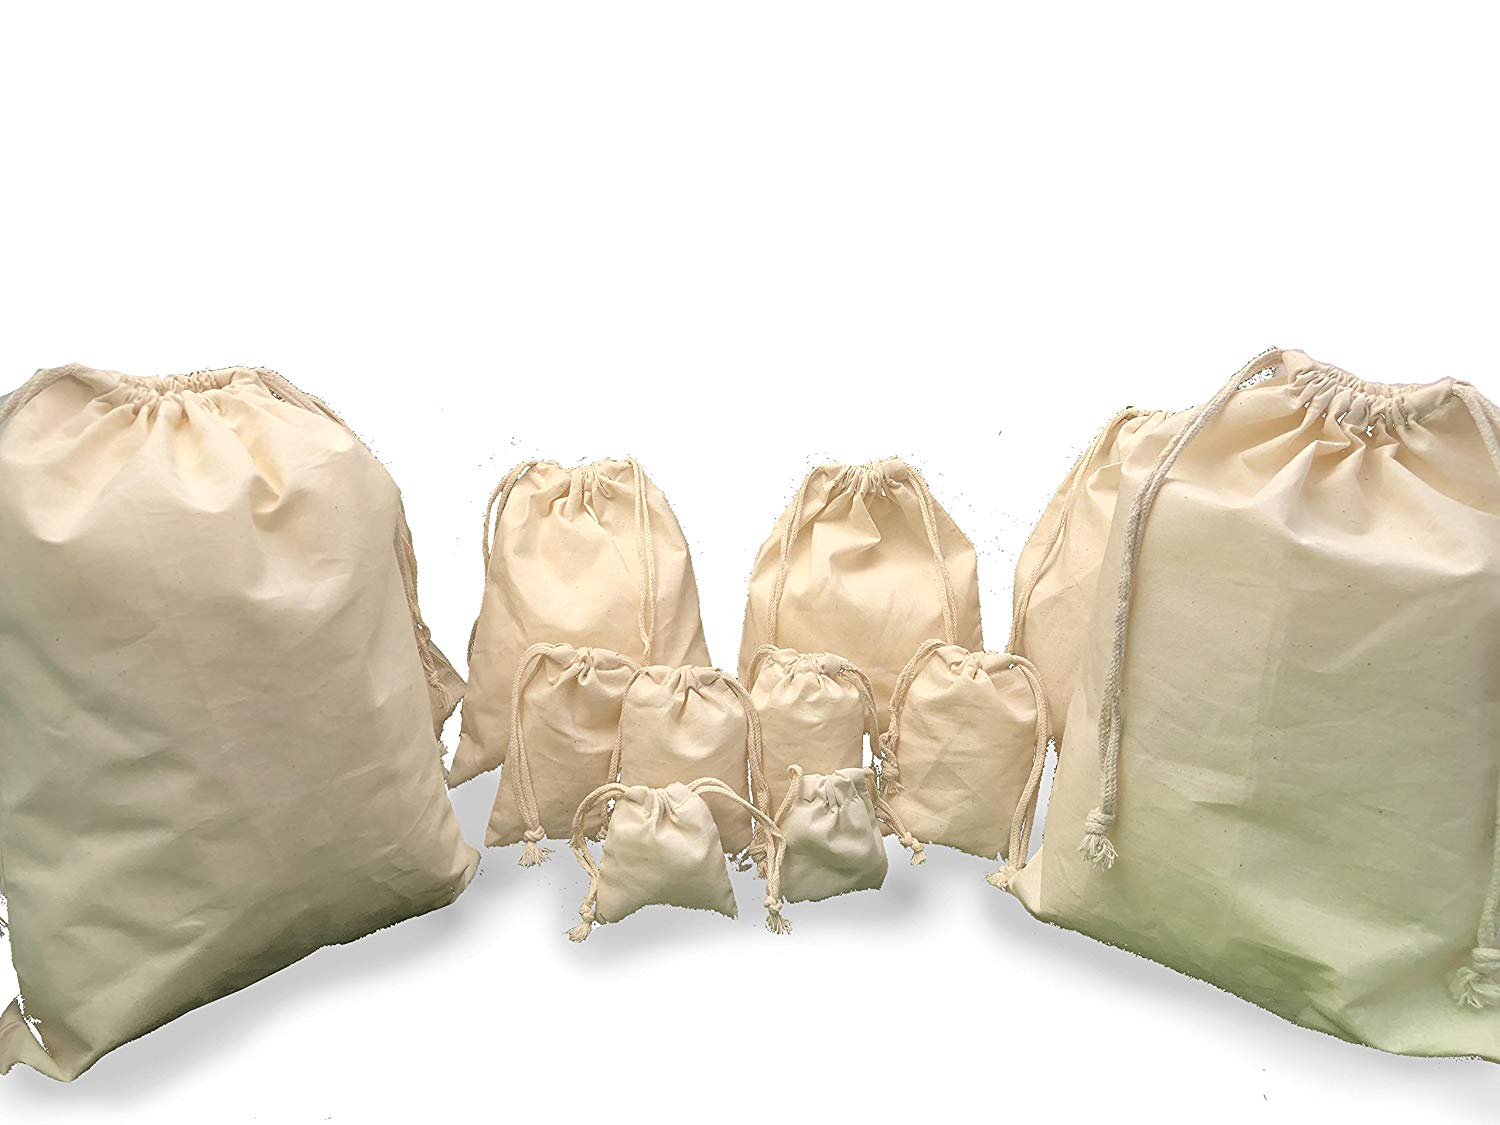 Wholesale Prices 2 x 3 Muslin Bag with Double Drawstrings 100/% Organic Cotton